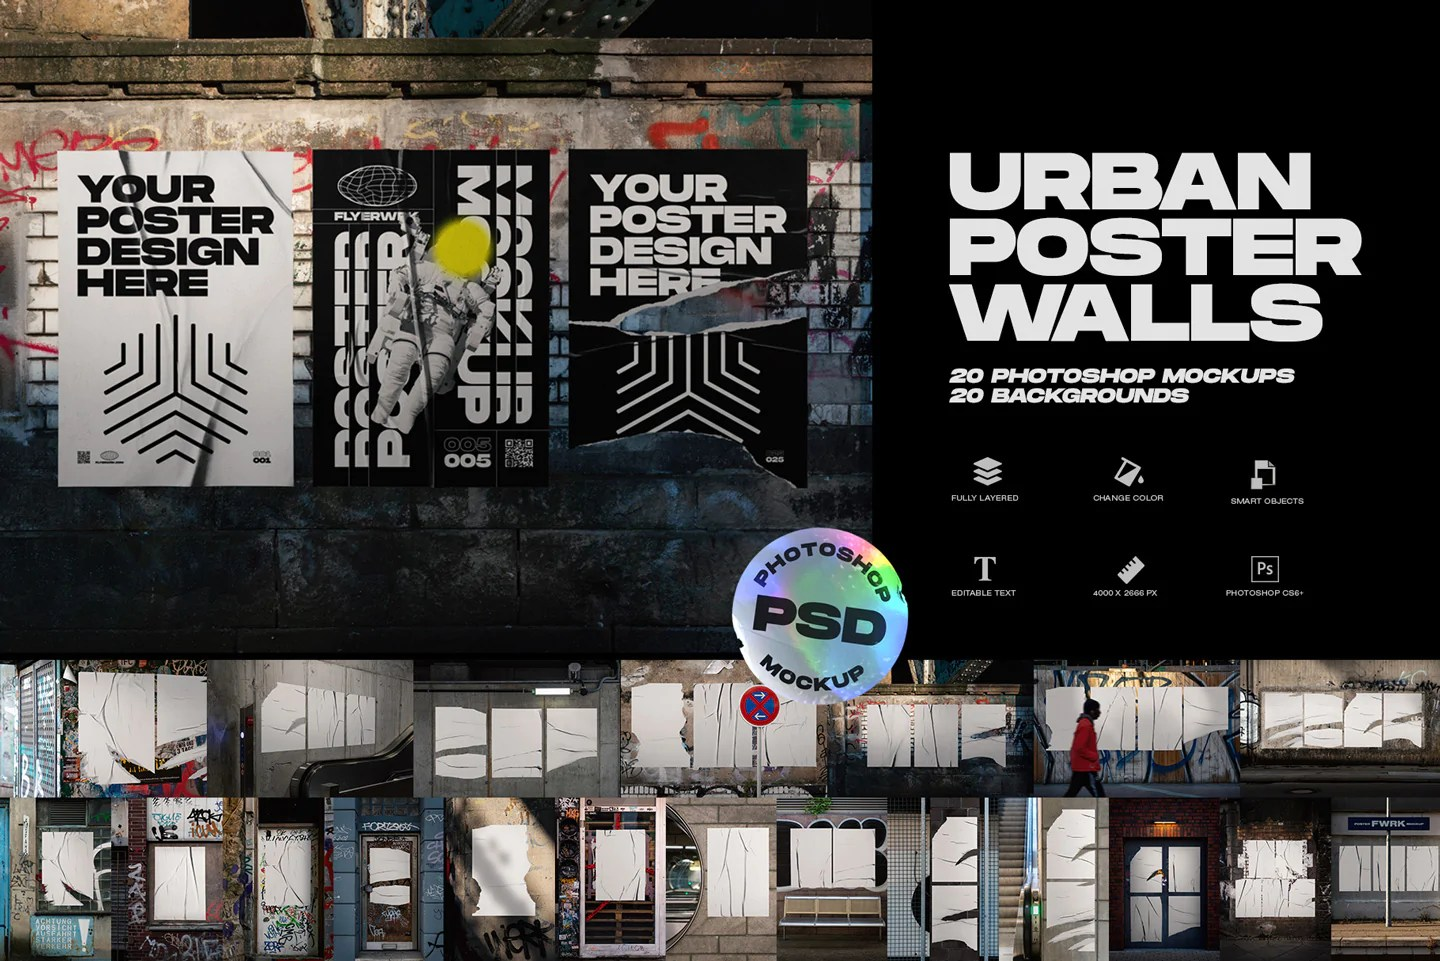 Download posters on wall street mockup for free. Urban Poster Wall Mockups Flyerwrk